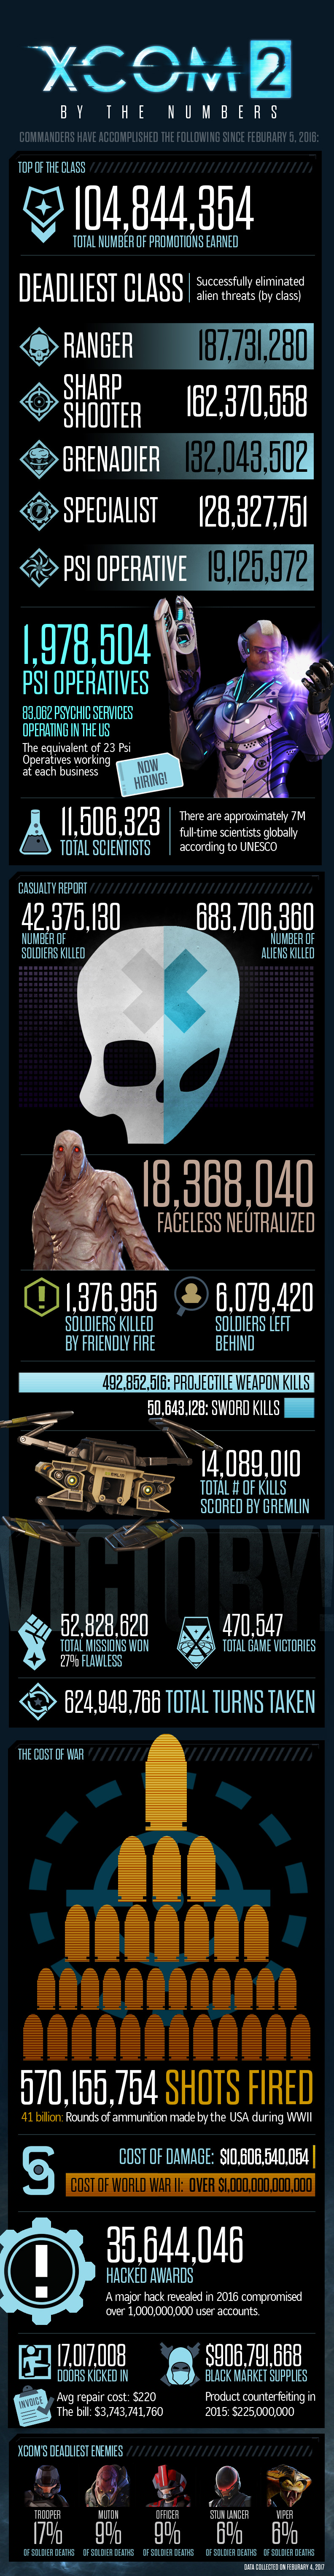 xcom2_by-the-numbers_v12.jpg